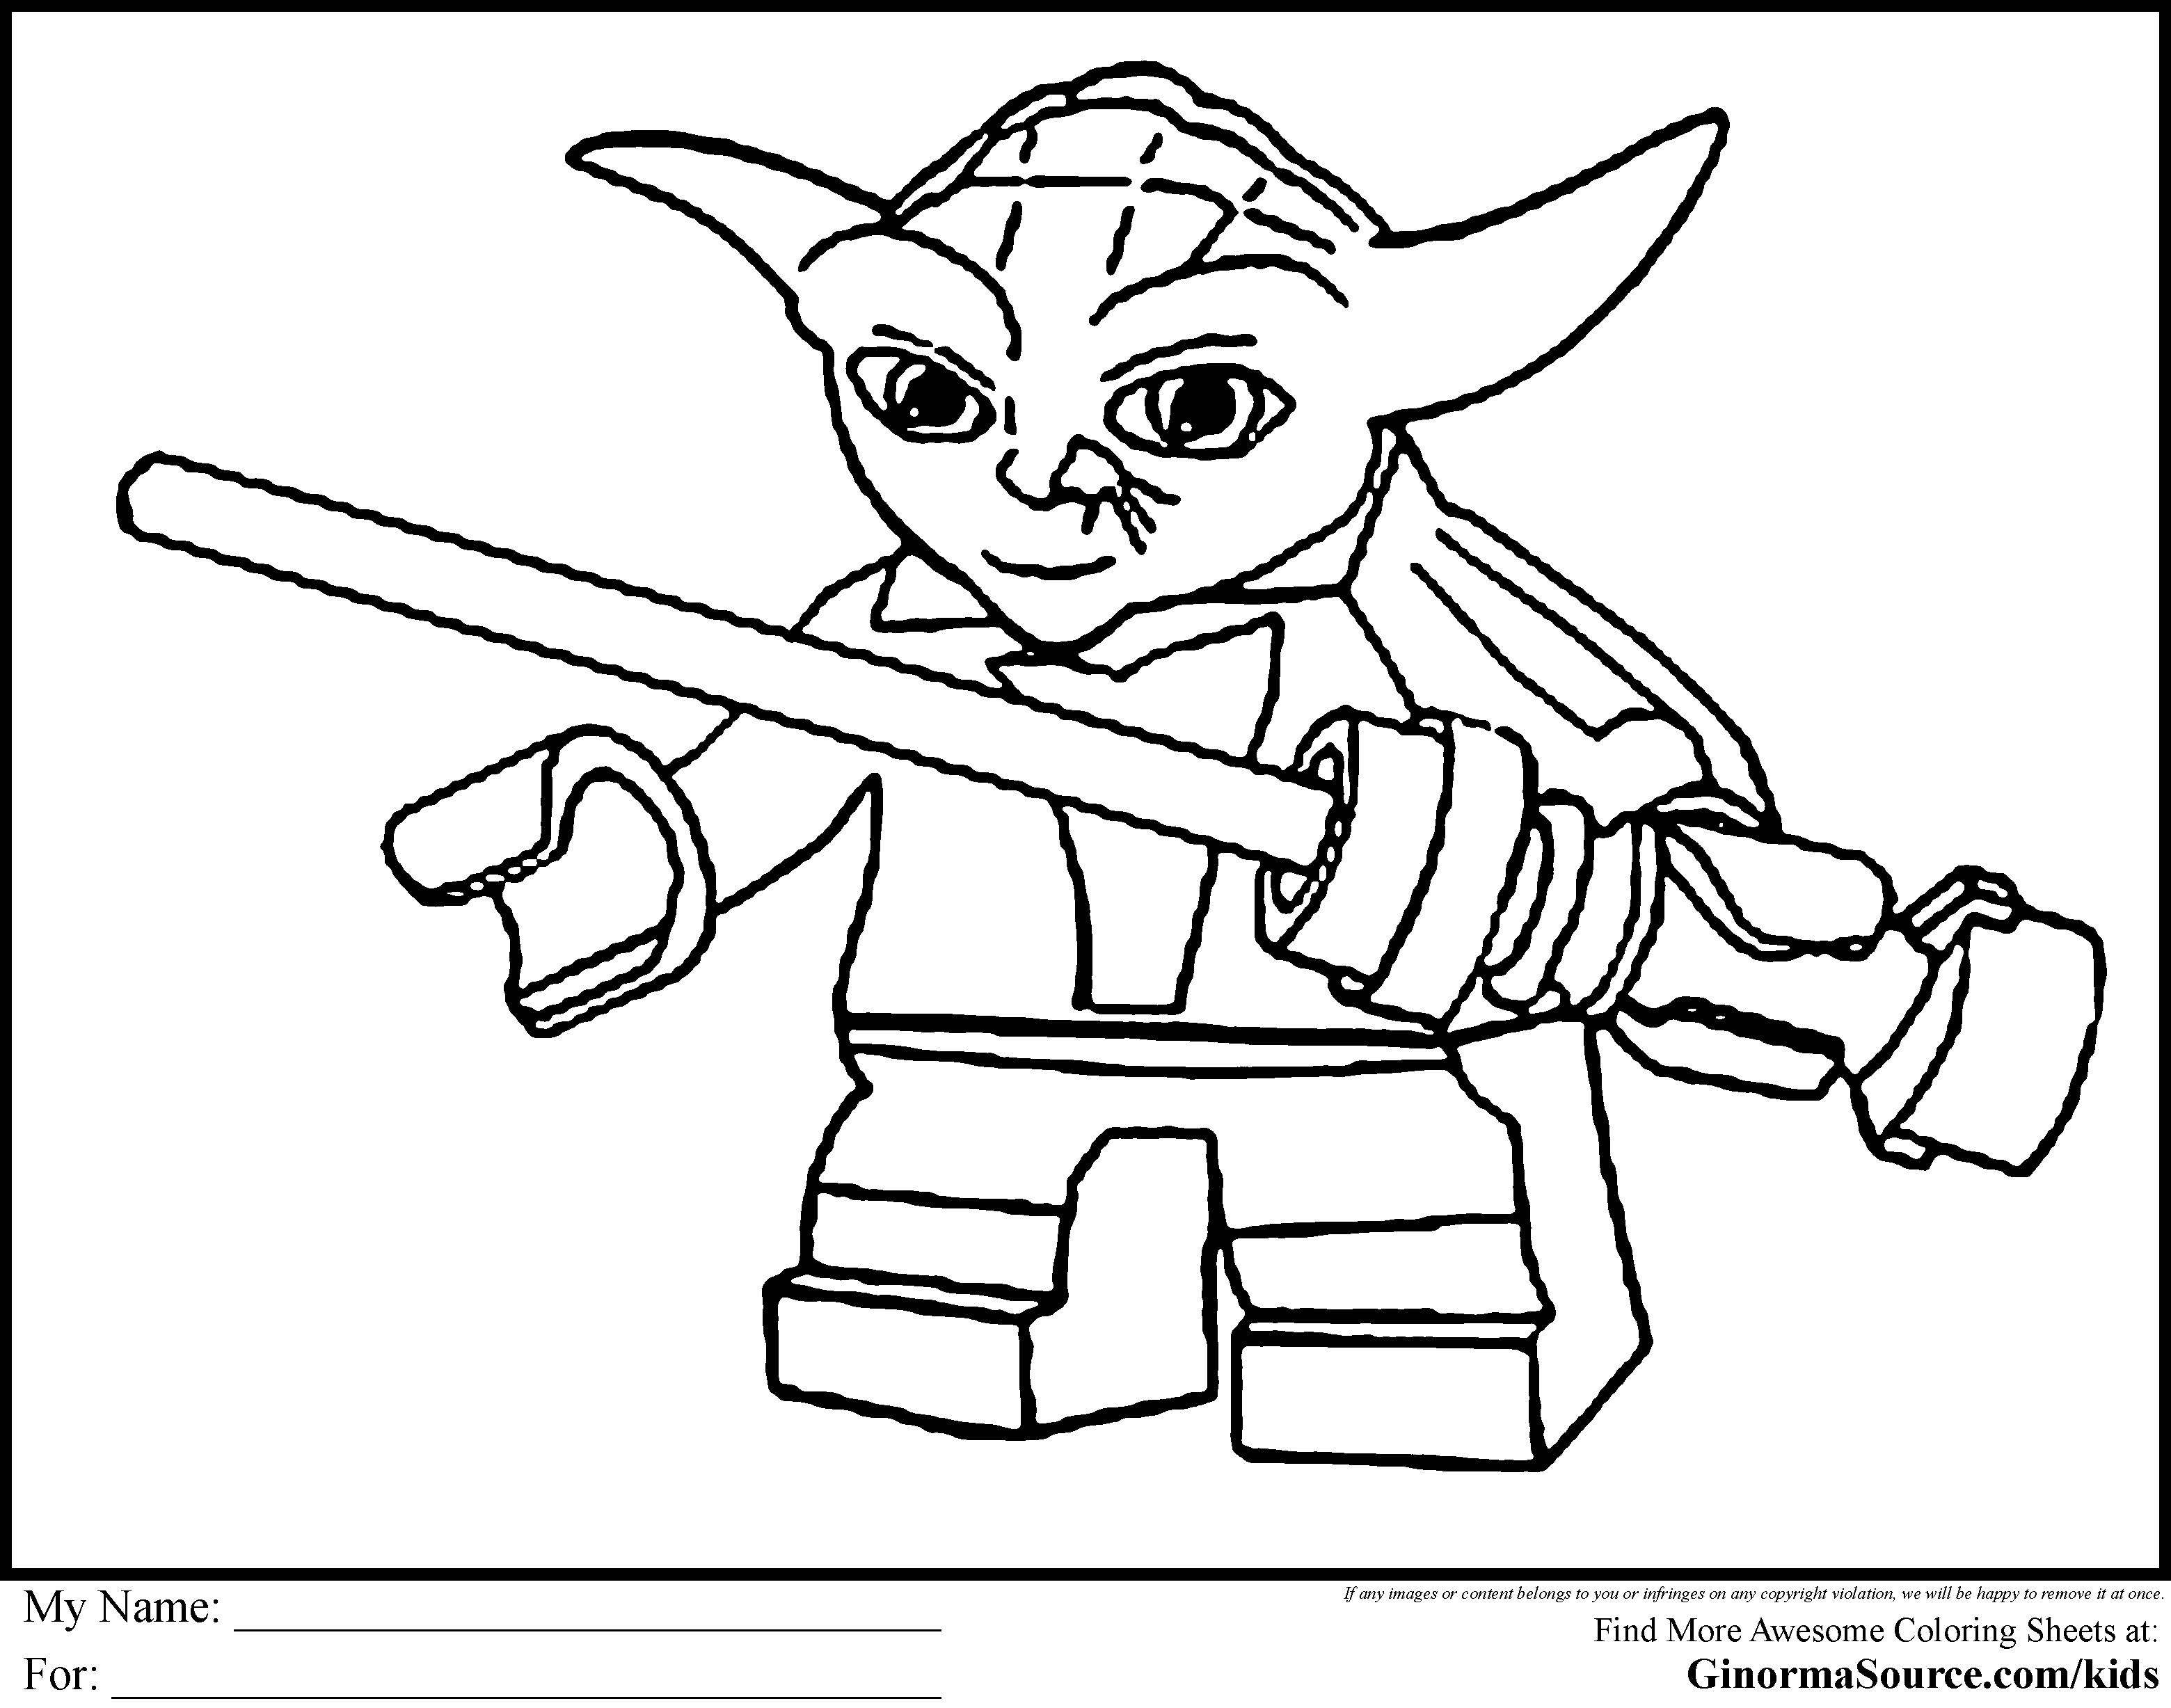 Printable Lego Colouring Pictures : Lego star wars coloring pages to download and print for free